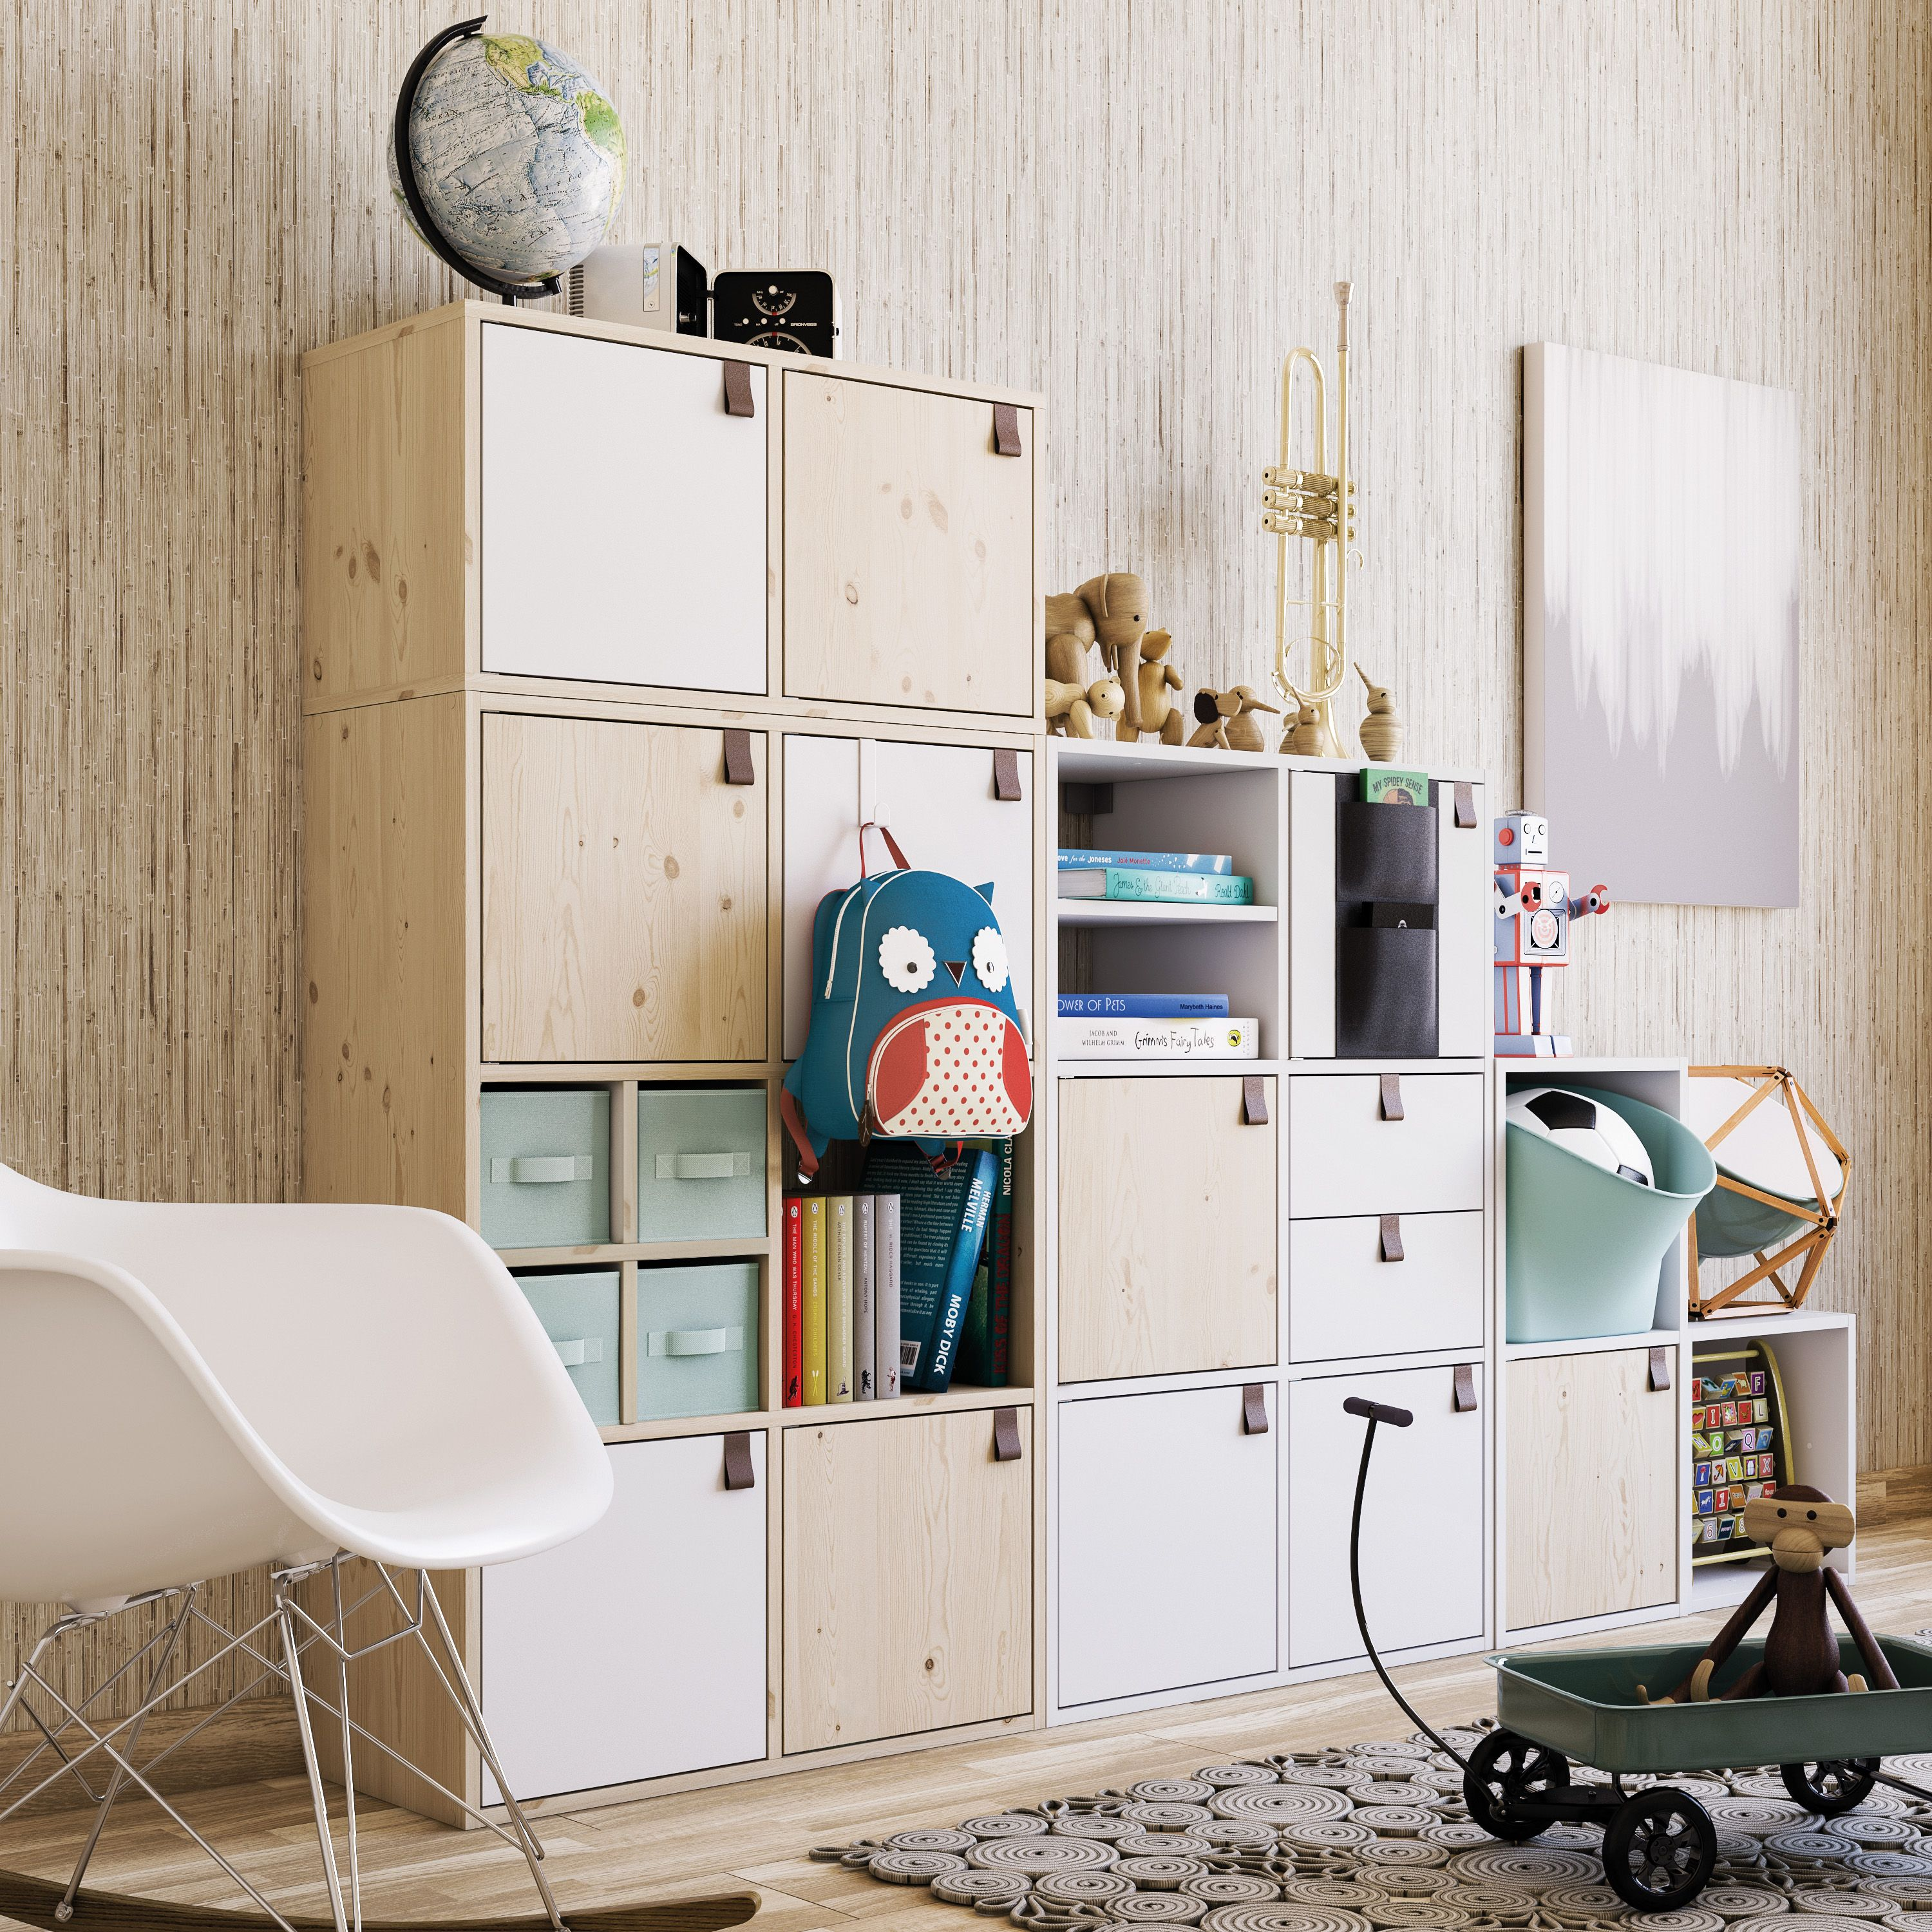 Spaceo Kub Leroy Merlin Rangement Kub Modularité Chambre Enfant Kids Room Etagere Chambre Enfant Meuble Rangement Enfant Cube Rangement